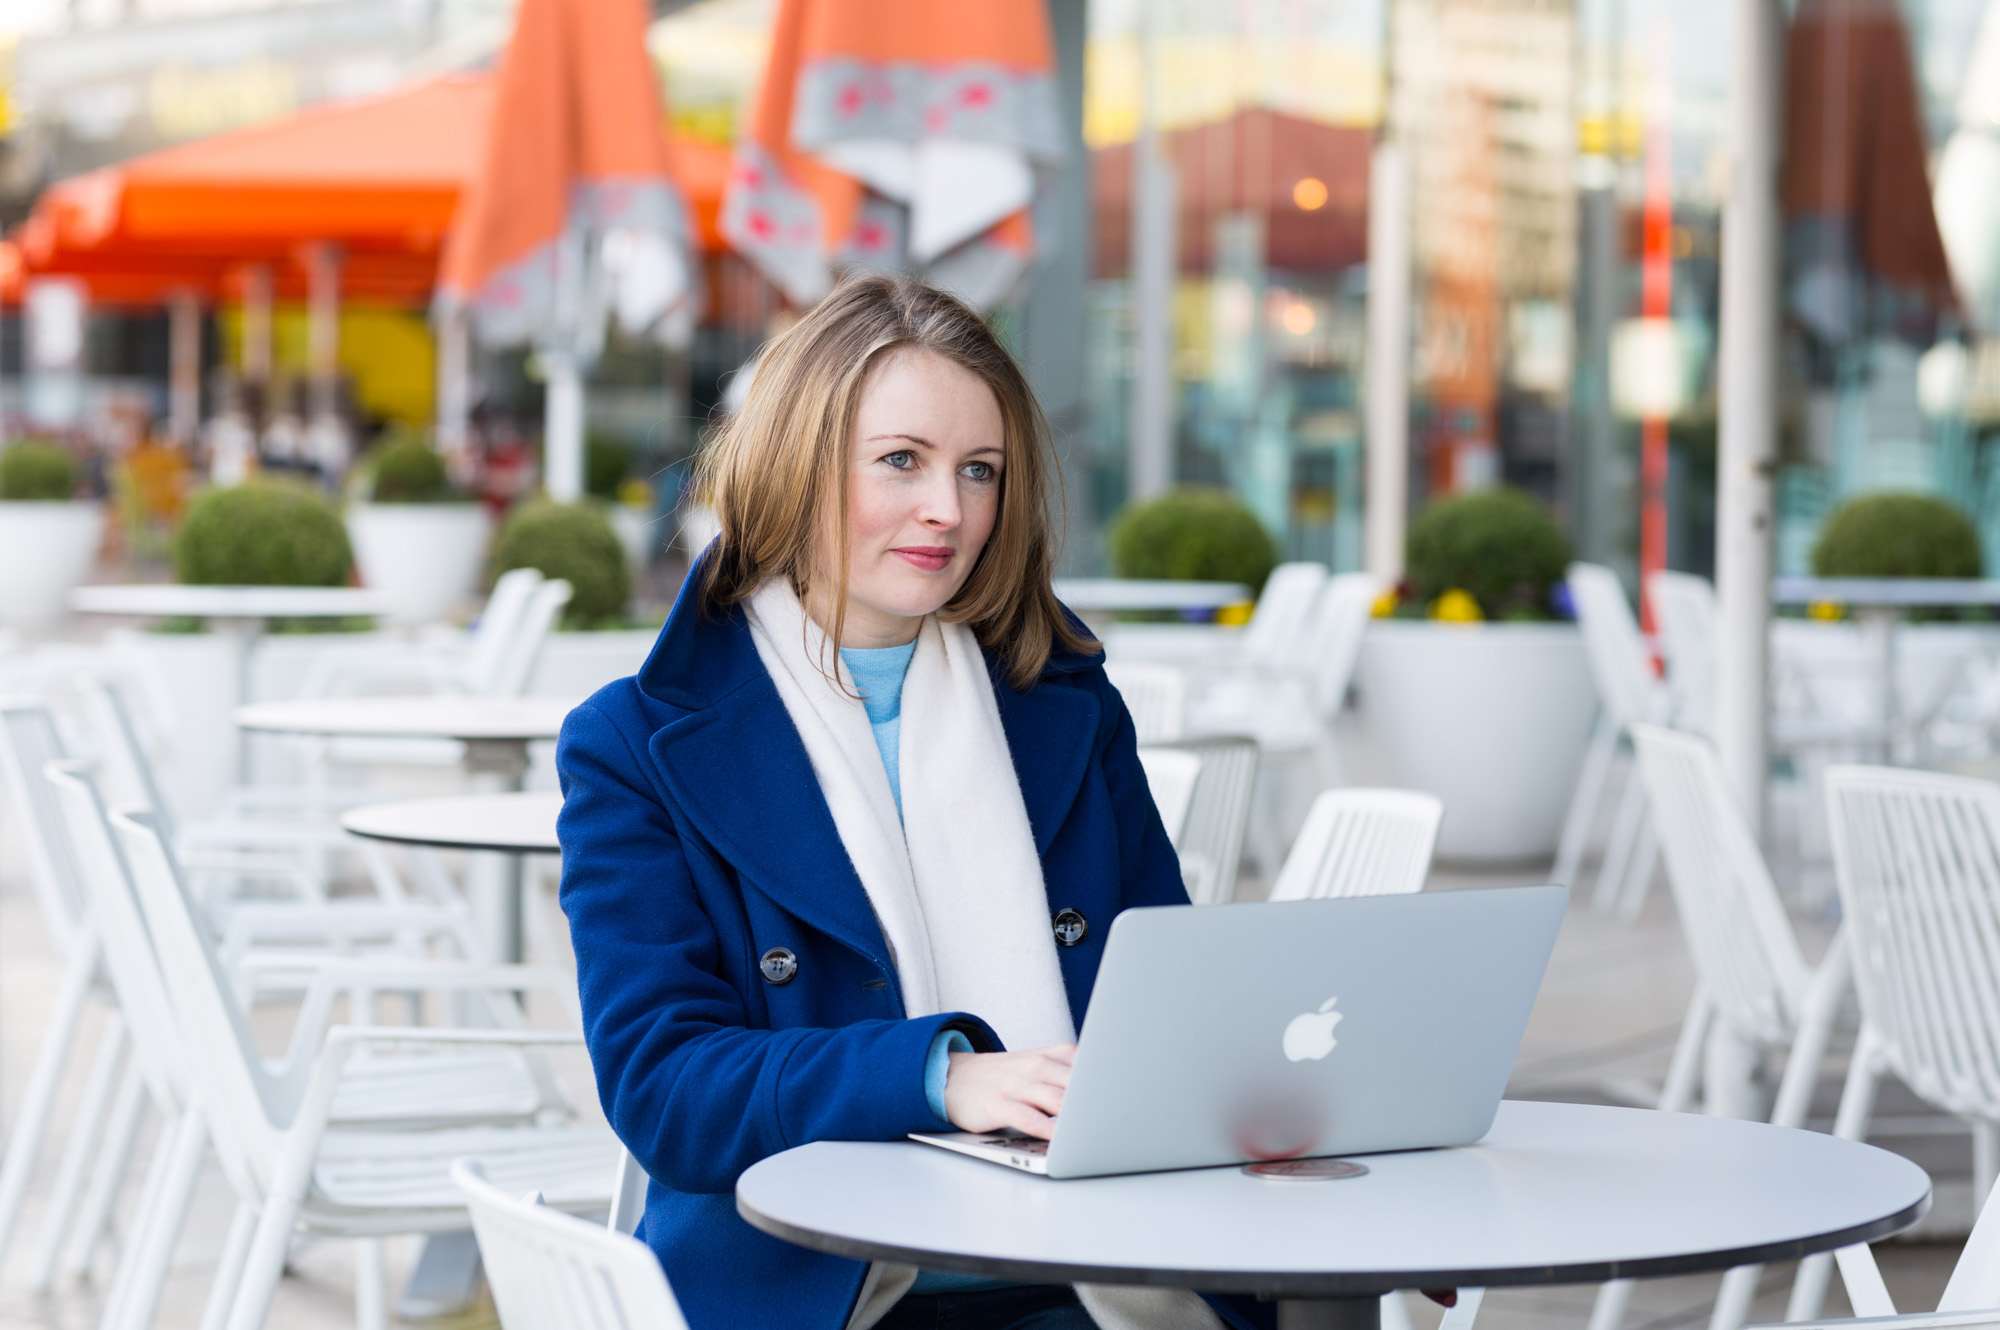 The world of work is changing and today it's possible to work from anywhere. Take advantage of the freedom and opportunities that freelancing brings